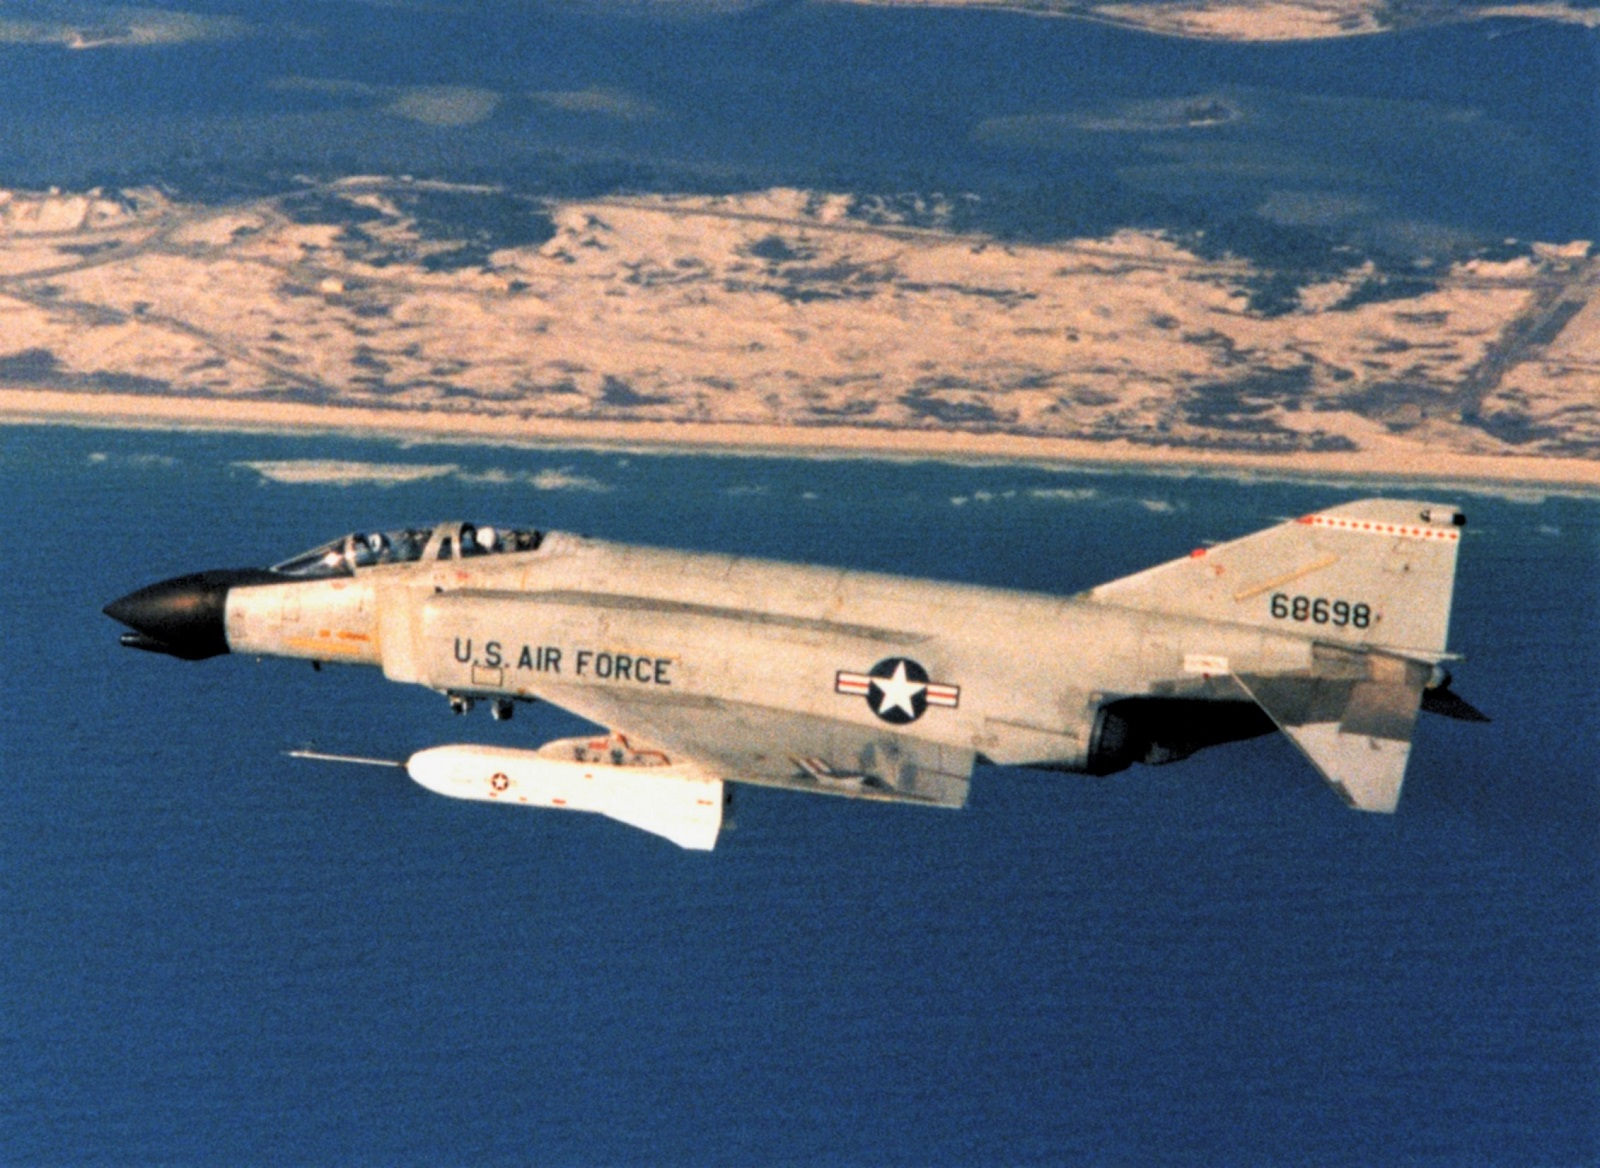 Meet the F-4 Phantom: The Old American Fighter Jet That Won't Go Away